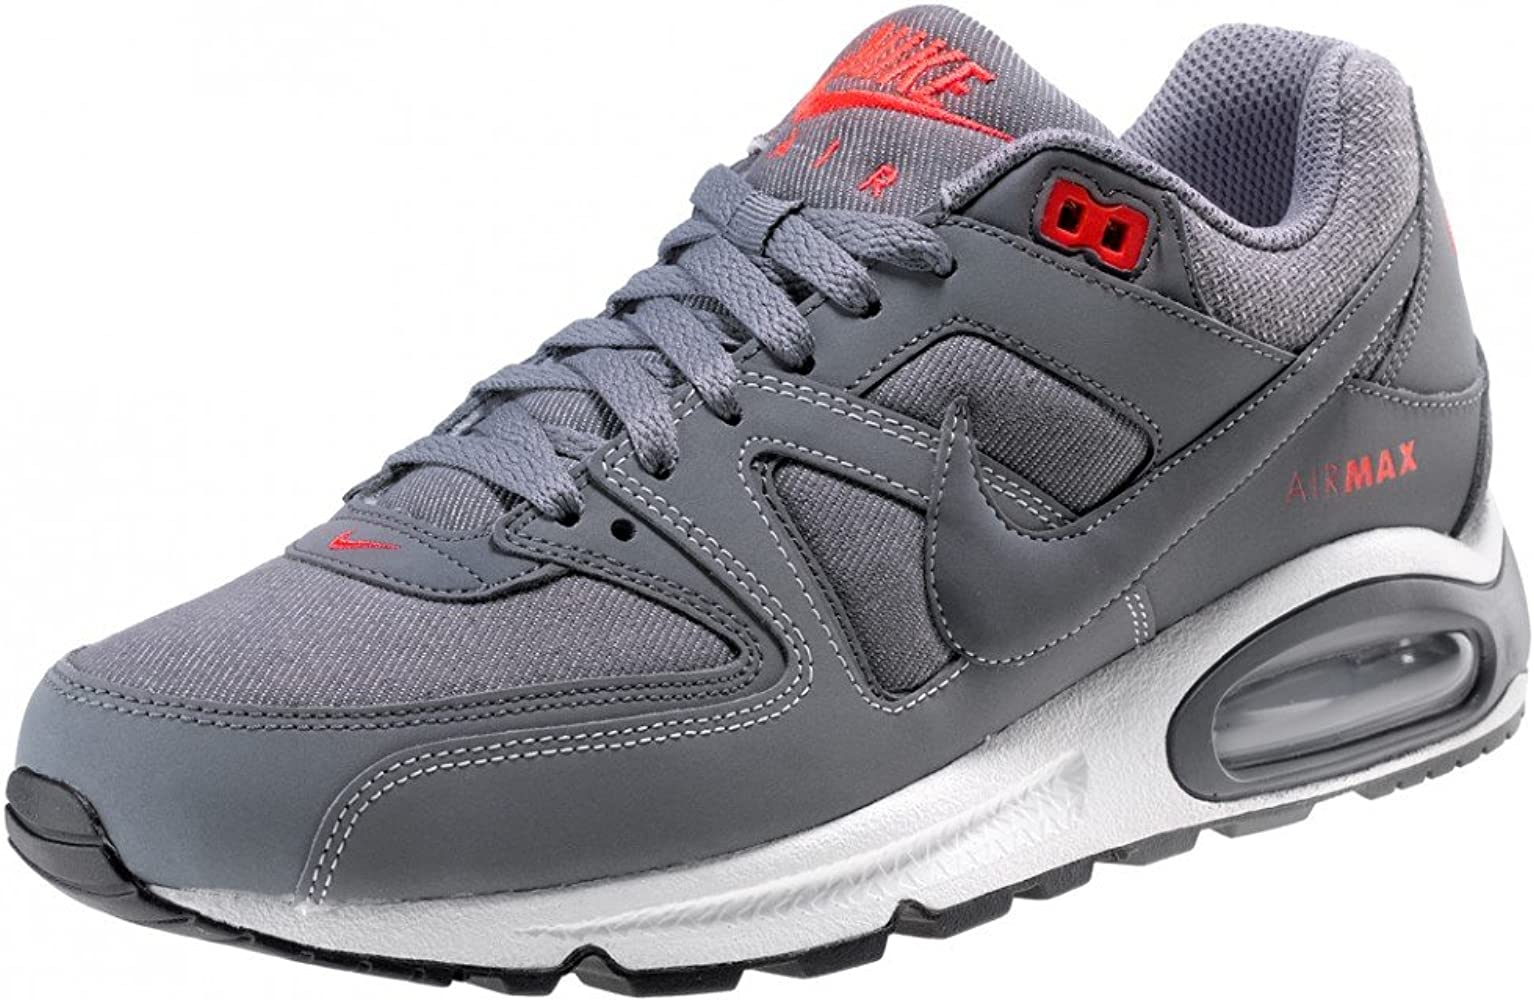 Nike Air Max Command, Chaussures de Gymnastique Homme, Gris (Ashen SlateThunder Diffused Racer Blue 407), 42 EU